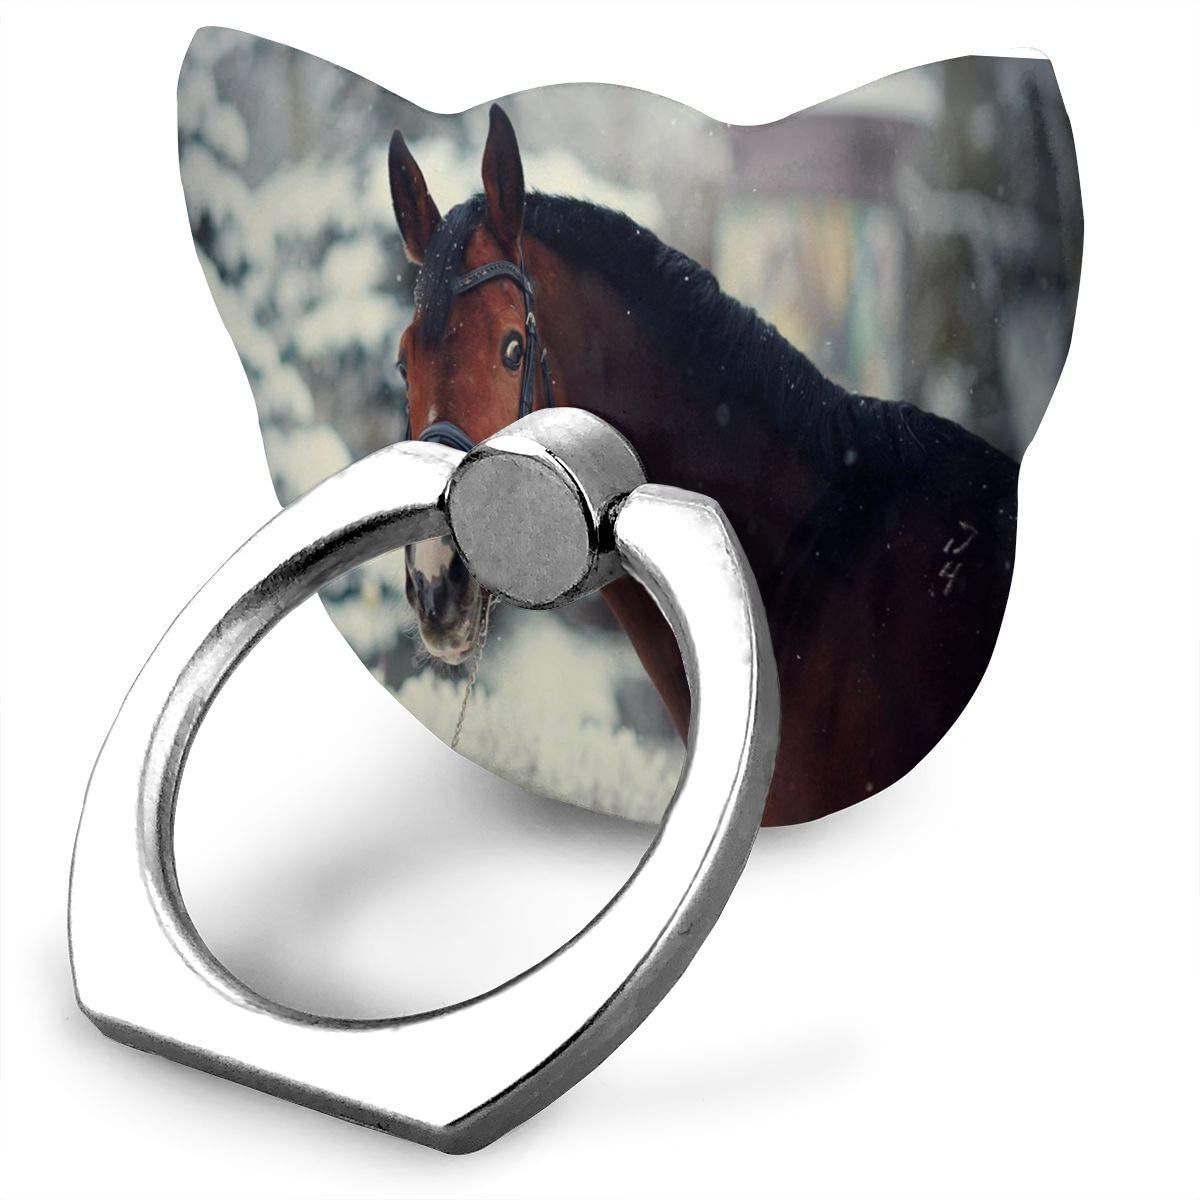 Universal Phone Ring Holder Beautiful Cute Funny Horse Animal Cat Shape Cell Phone Ring Stand Adjustable Finger Kickstand Grip-Silver Mobile Phone Stand for Women Kids Men Ladies Smartphones